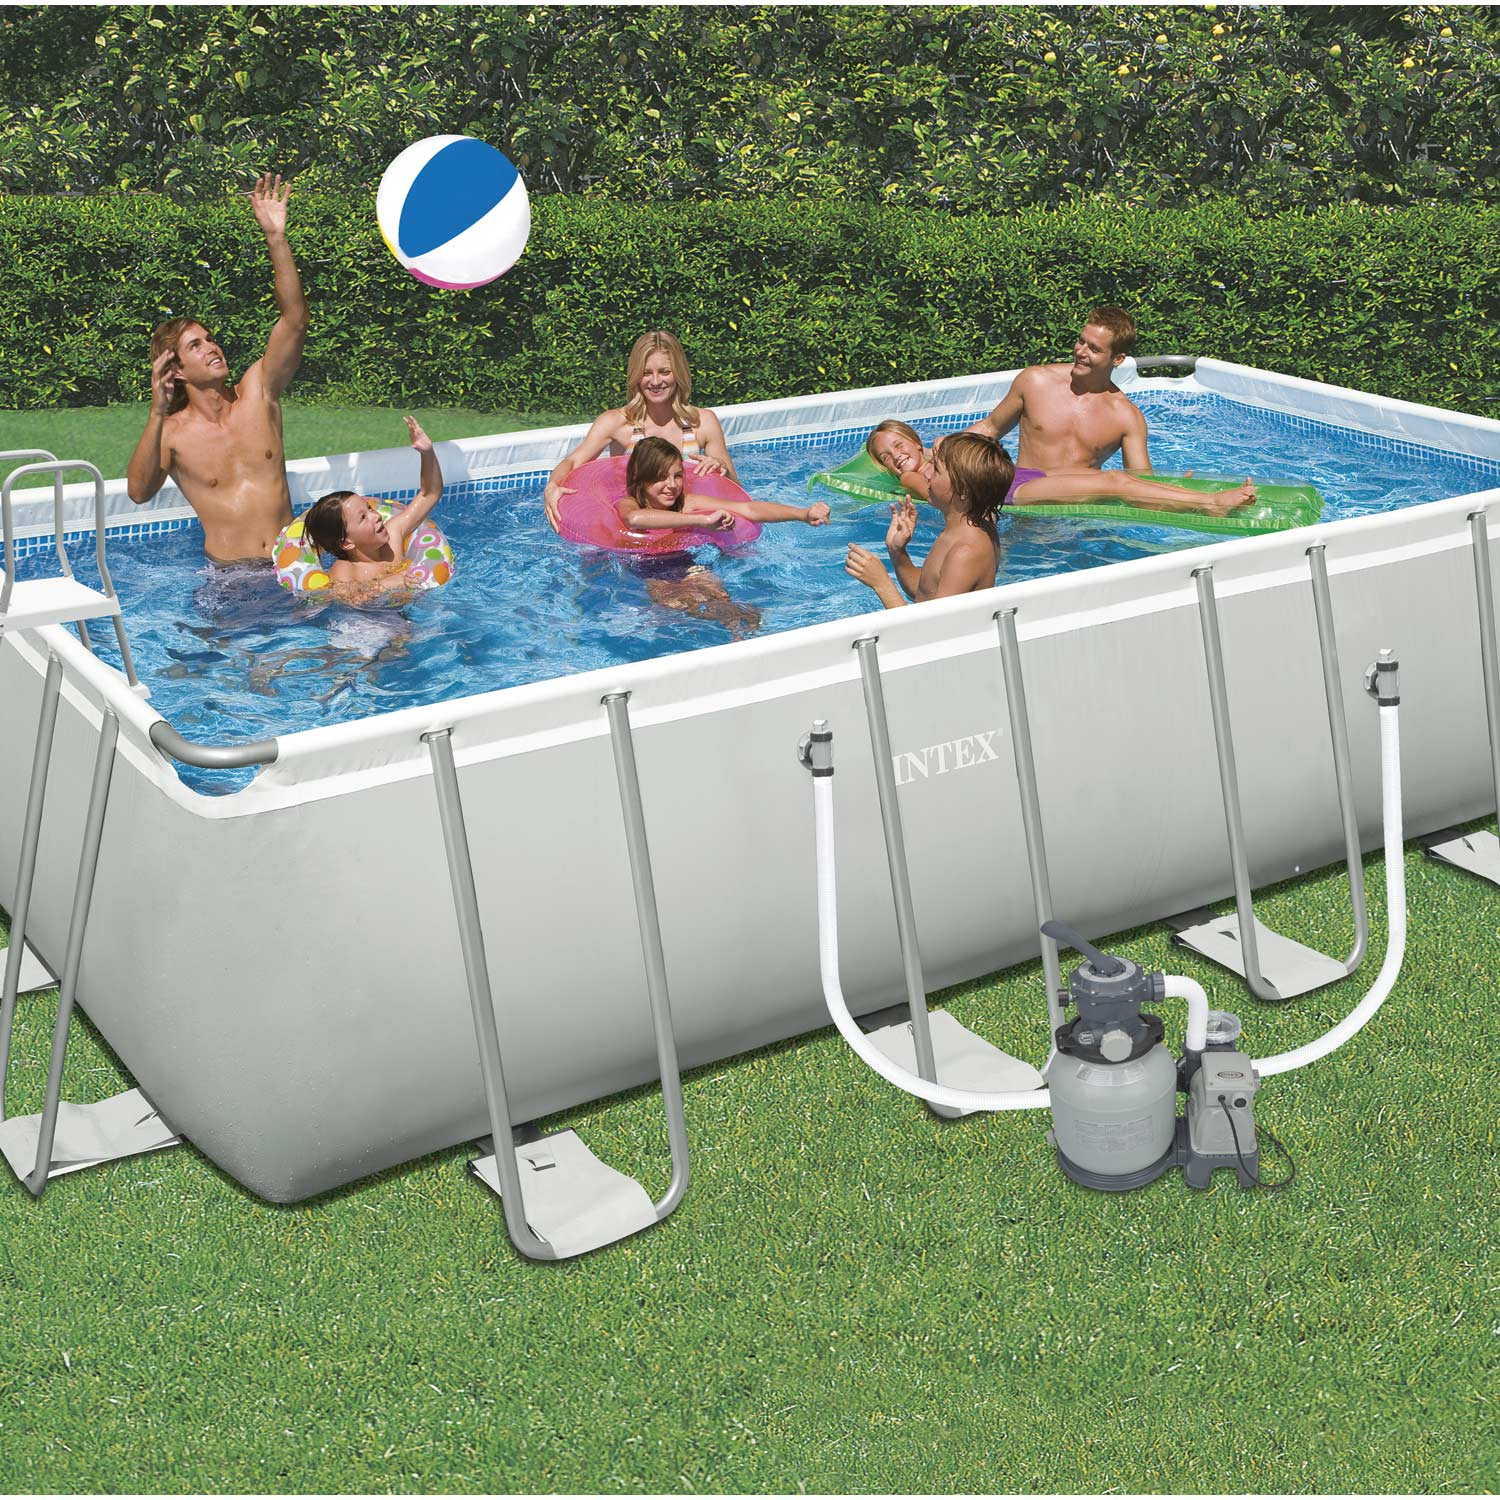 Piscine hors sol autoportante tubulaire ultra silver intex for Piscine de nage hors sol